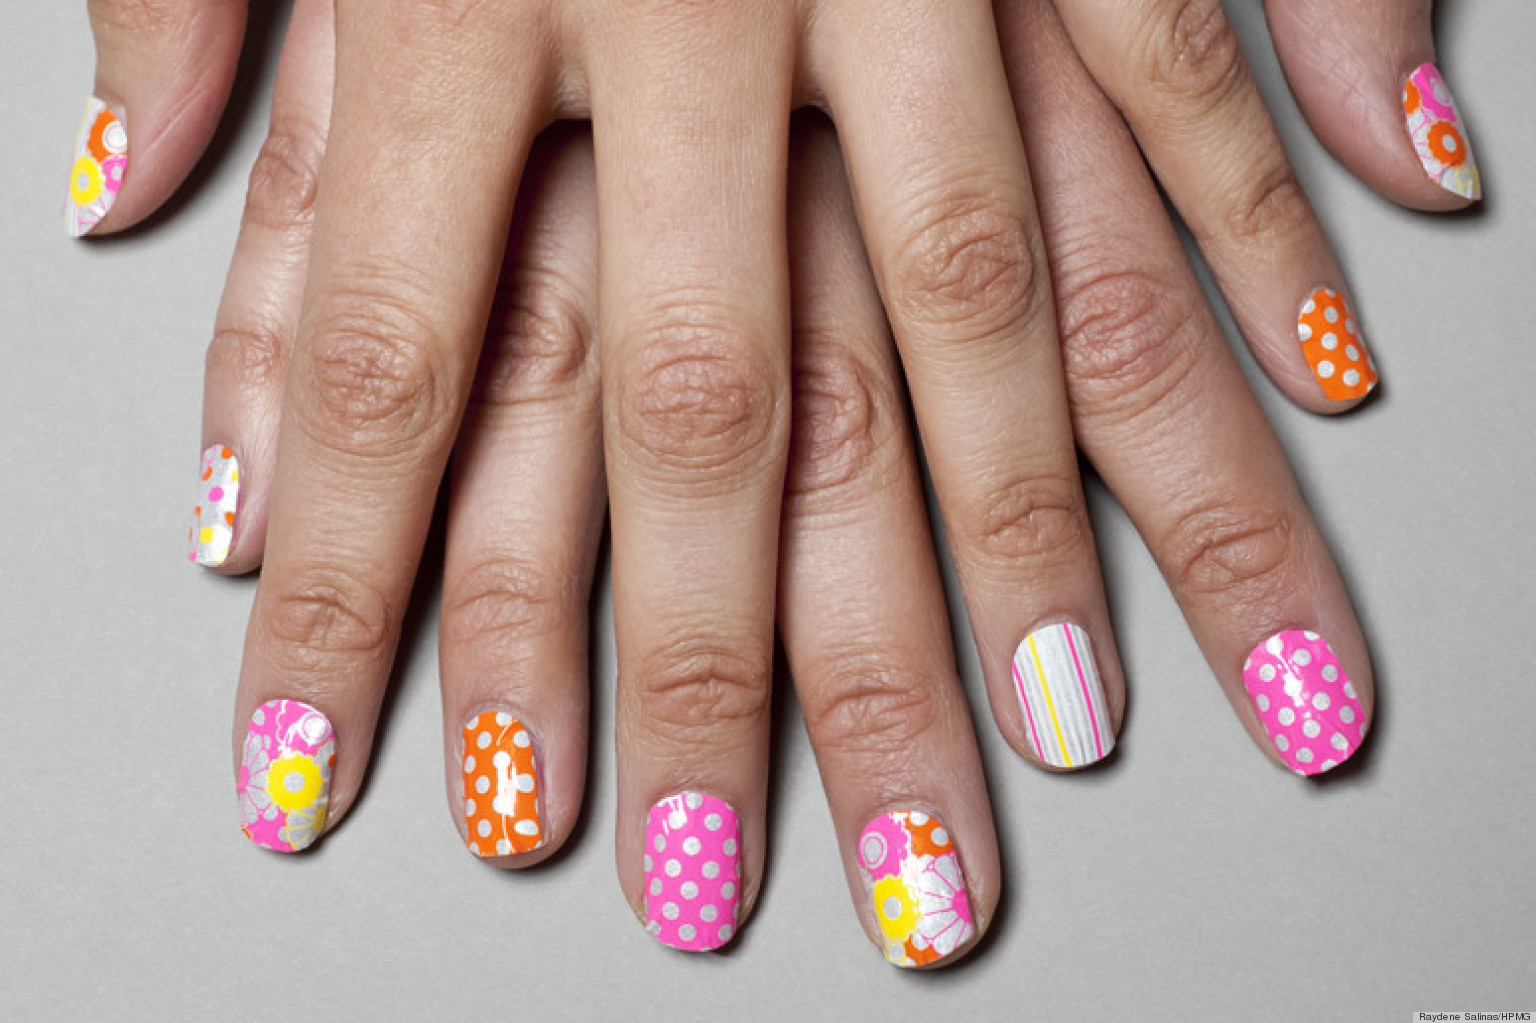 Nail art stickers the dos and donts of application huffpost prinsesfo Choice Image